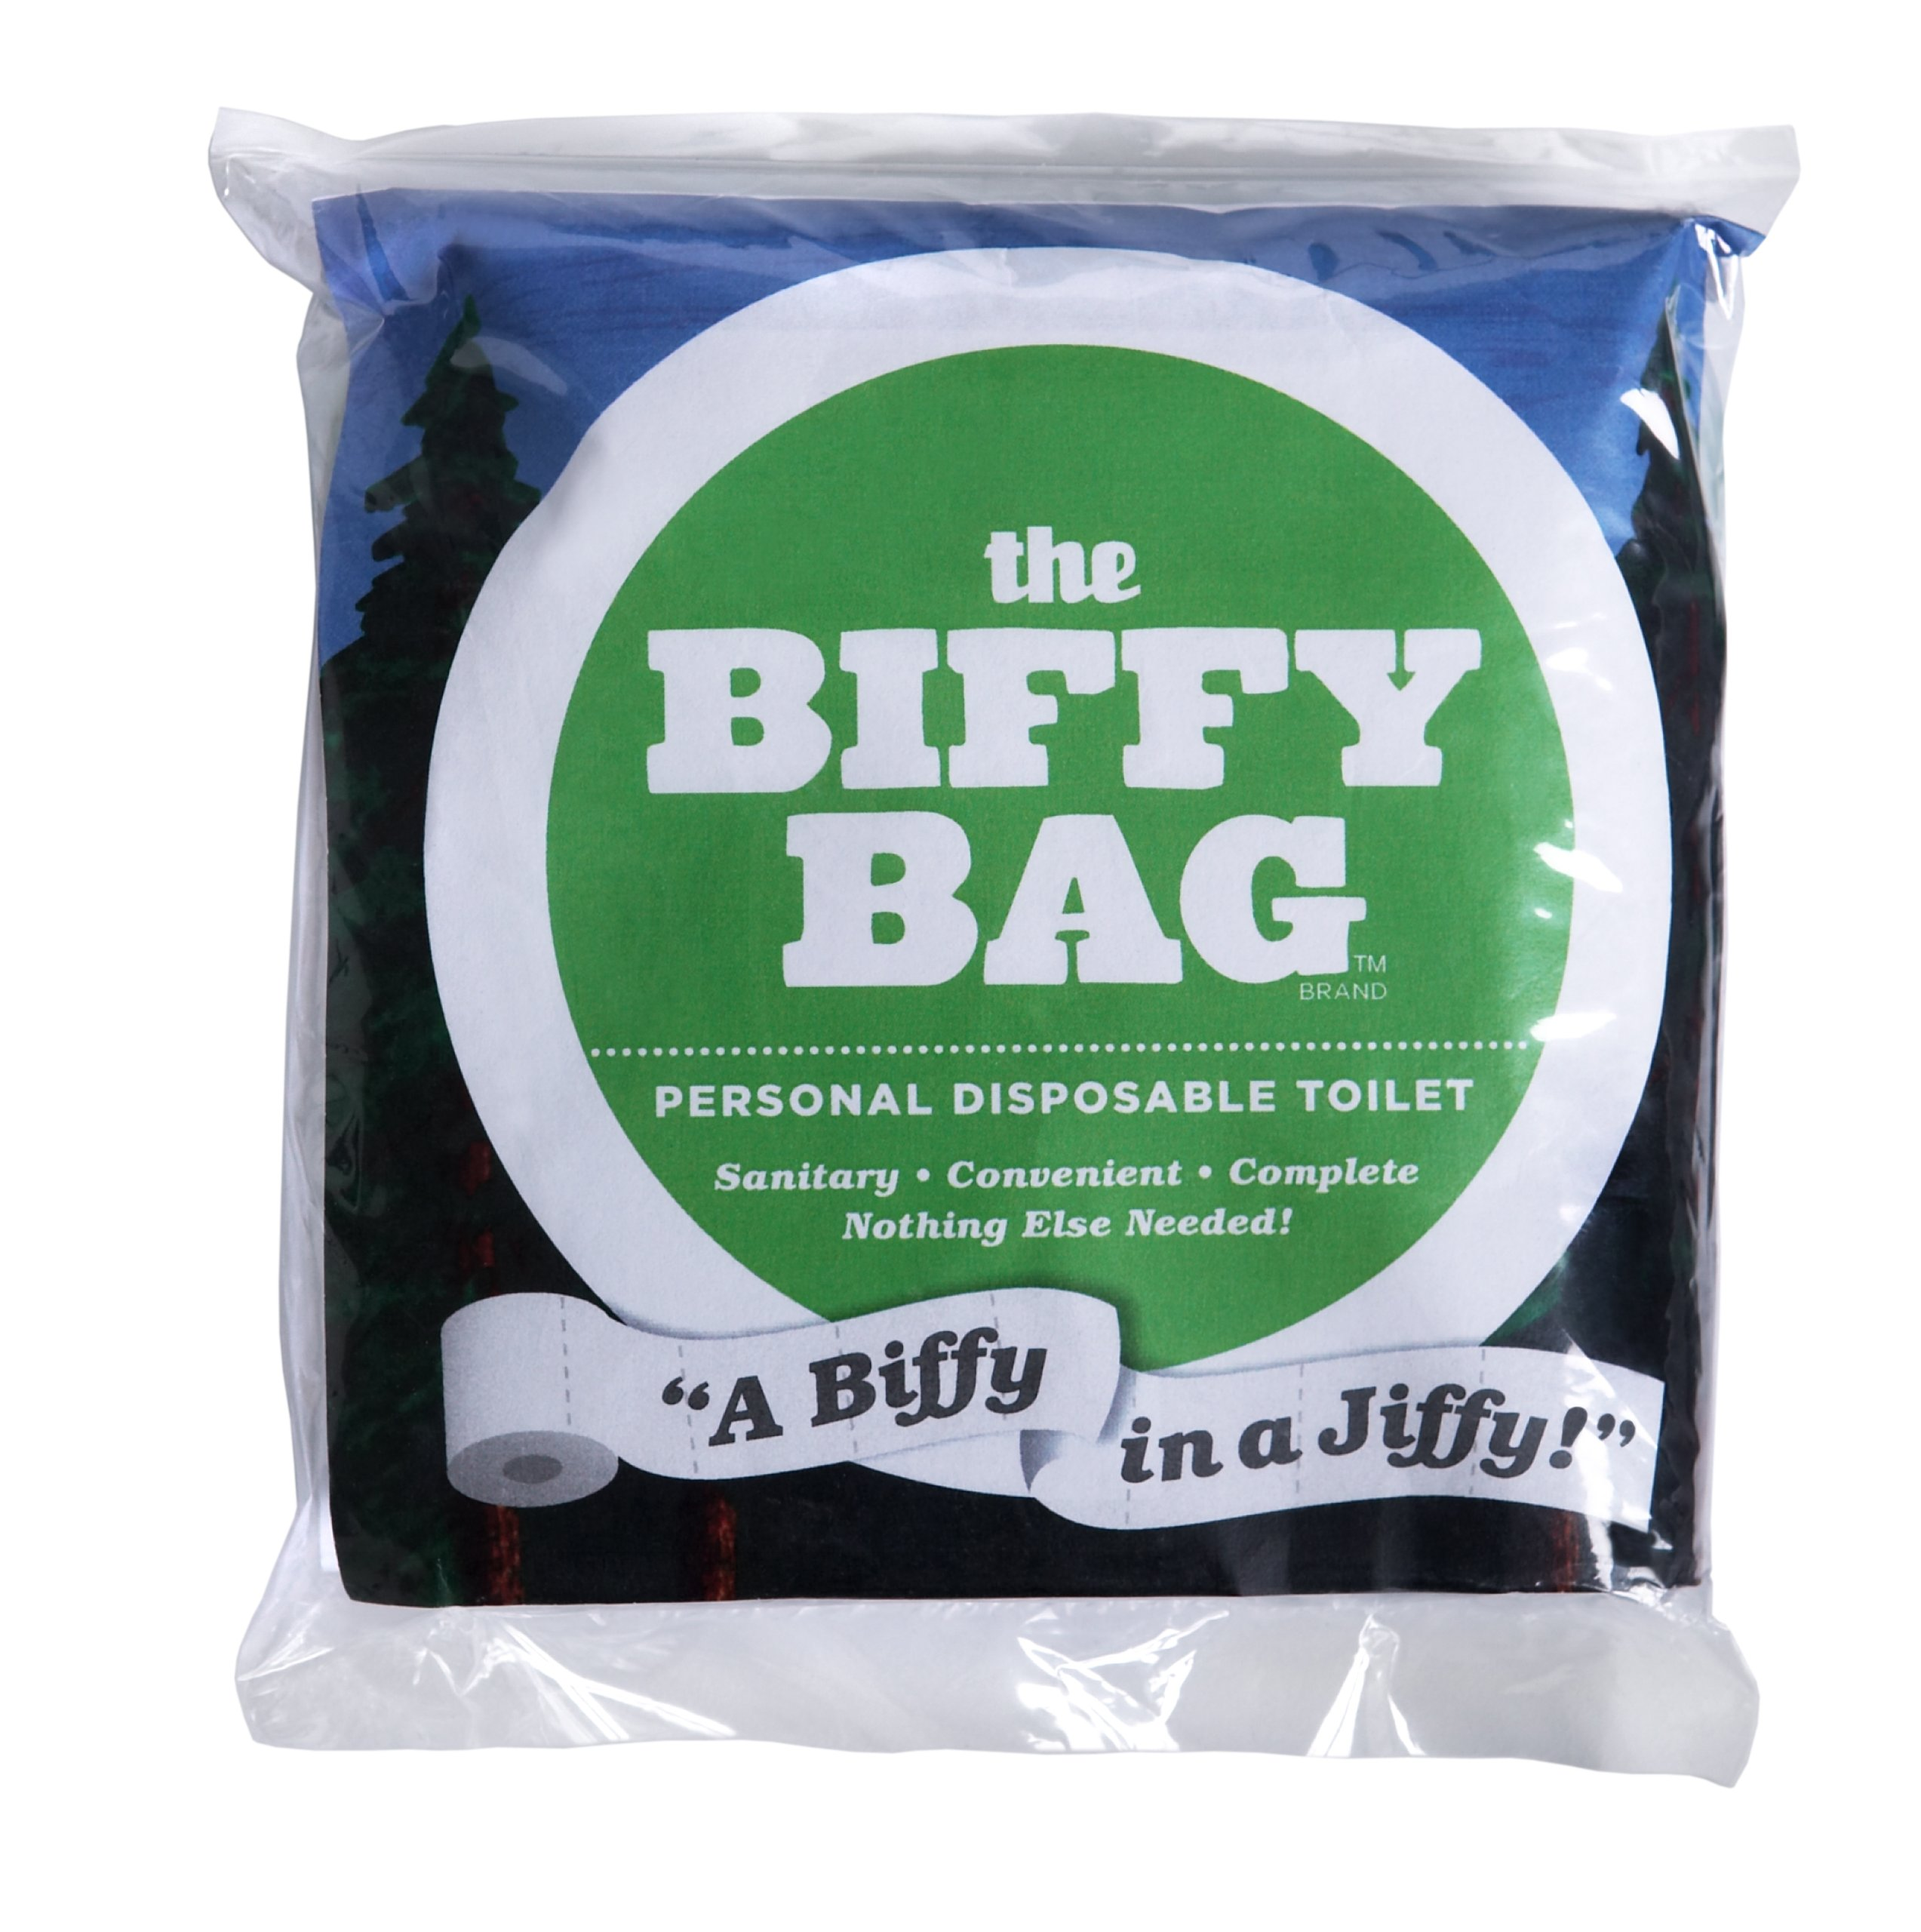 Biffy Bag Pocket Size Disposable Toilet (Pack of 1), Classic